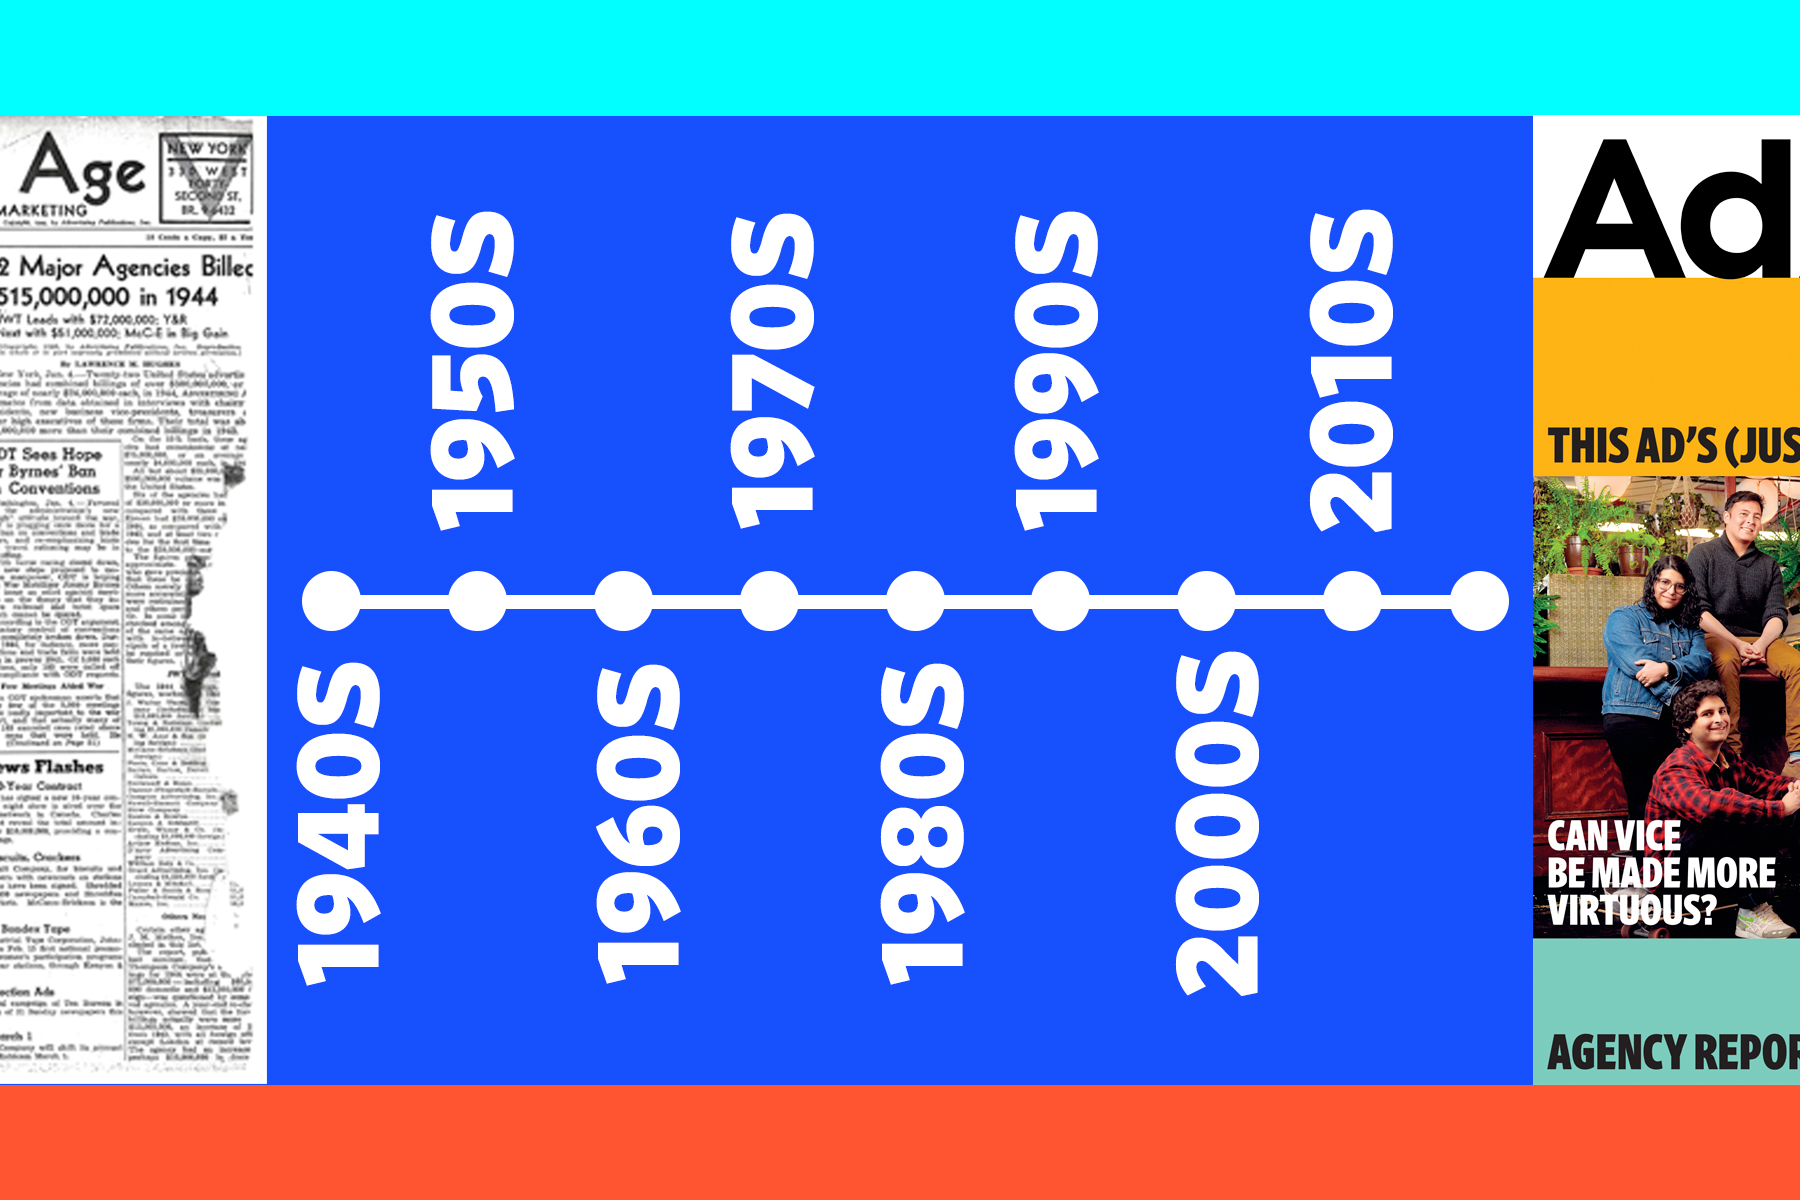 75th Annual Agency Report Timeline